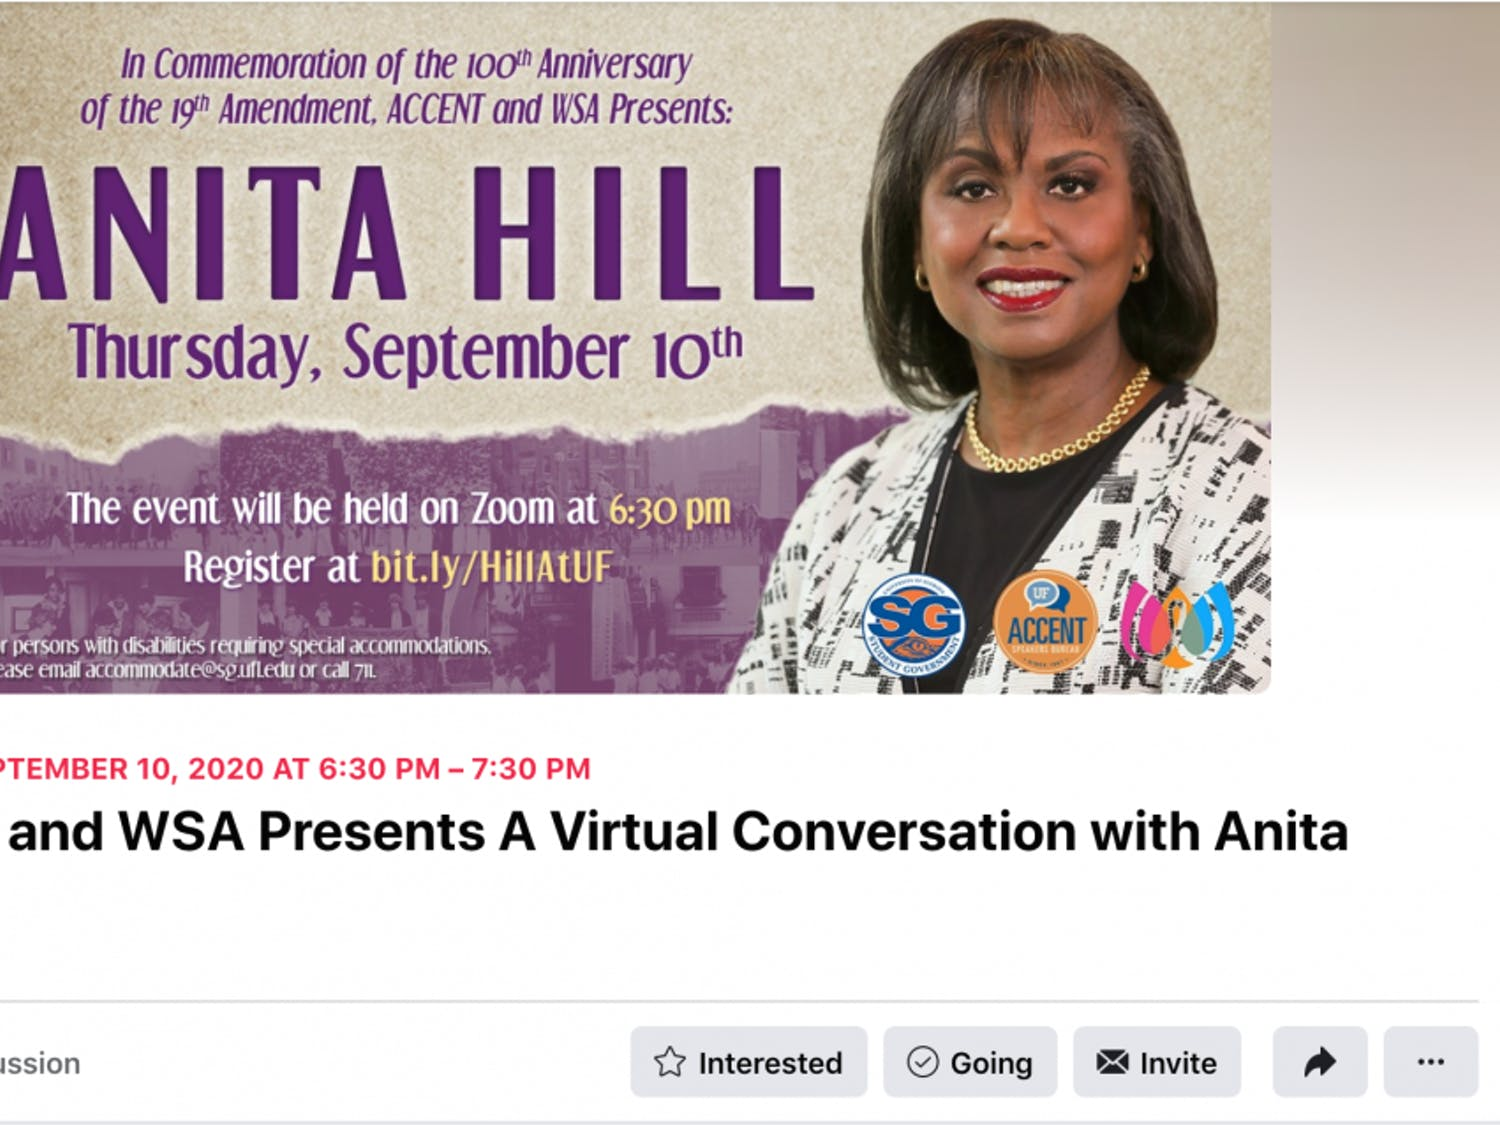 Anita Hill spoke to UF in a 45-minute virtual interview Thursday. The event was be moderated byDebra Walker King, a UF English professor, and was hosted byAccent Speakers Bureau and the Women's Student Association.